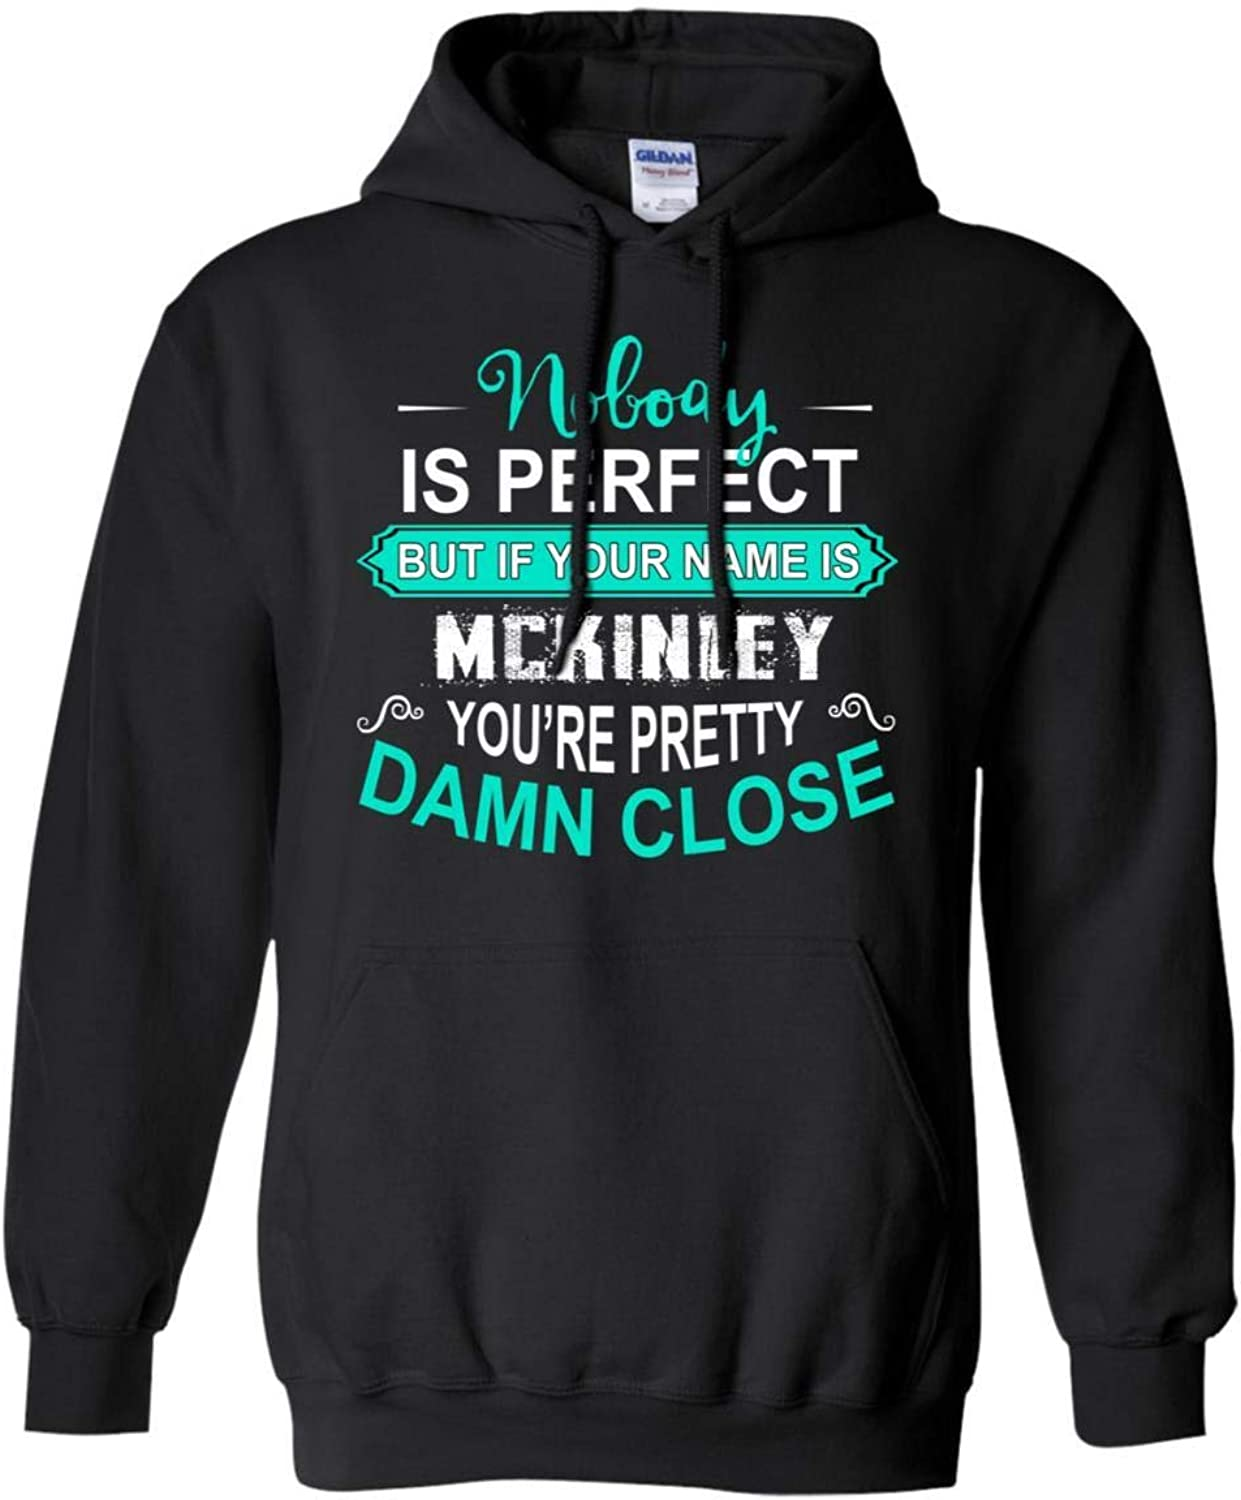 Tee Shine Nobody is Perfect But If Your Name is MCKINLEY You're Pretty Damn Close Men's Hoodie Sweatshirts Xmas Gifts